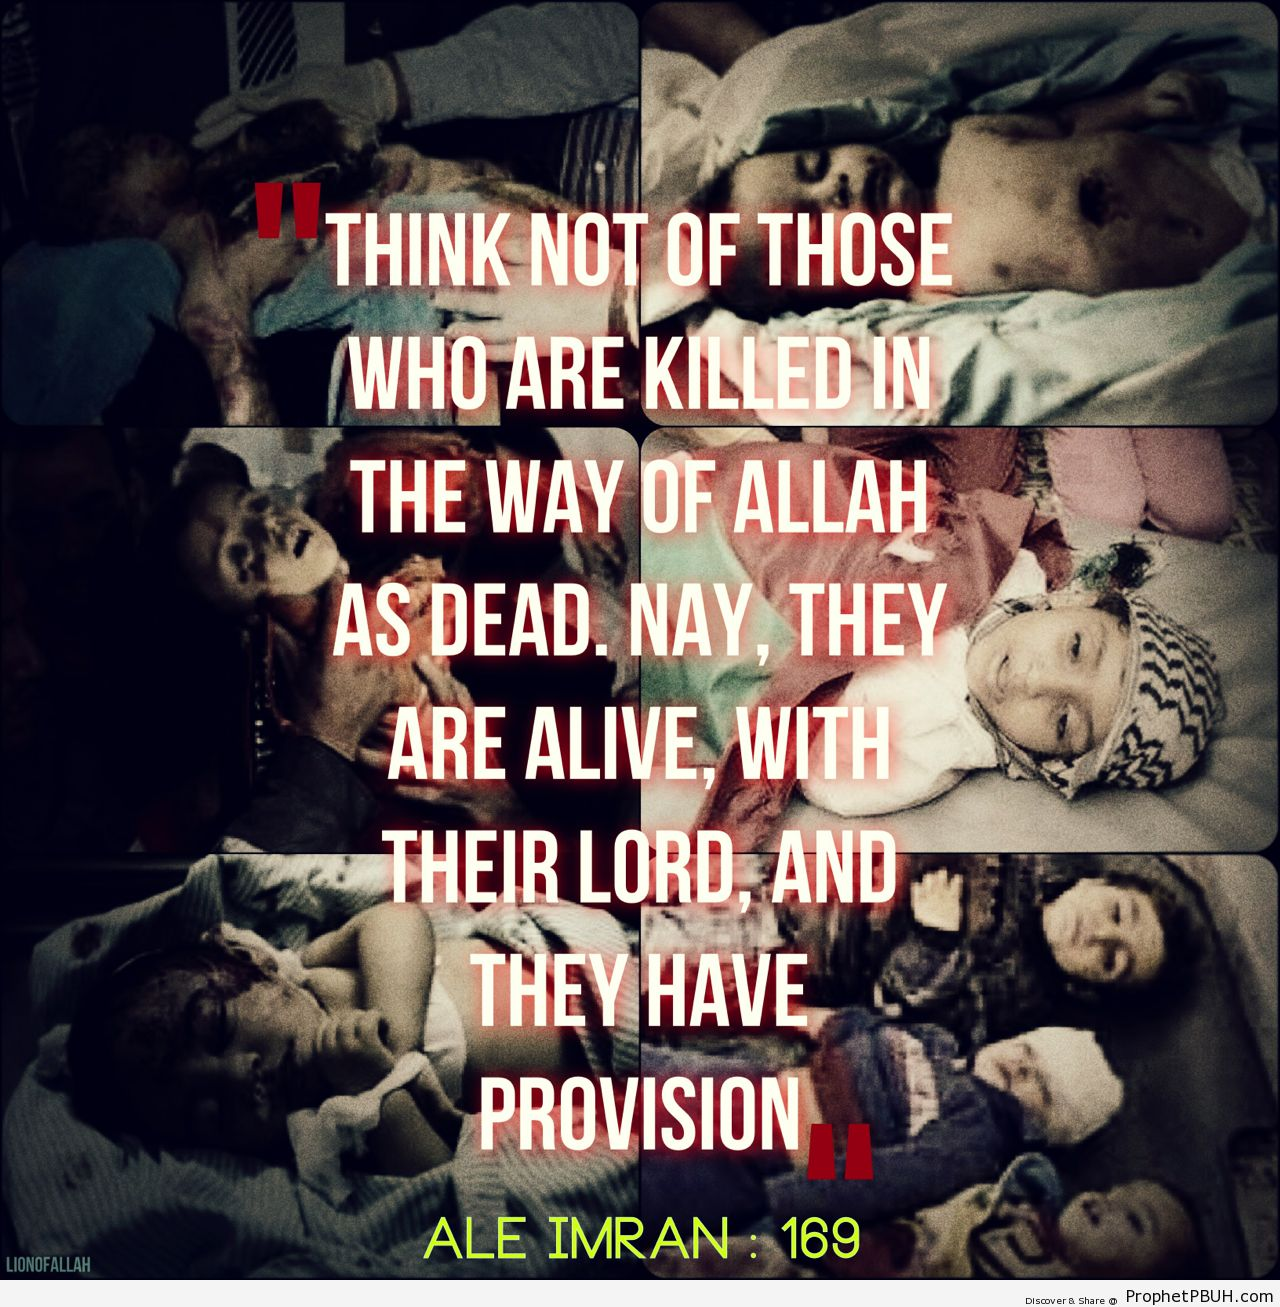 AllahuAkbar, THEY ARE ALIVE, THEY... - Islamic Quotes, Hadiths, Duas-001